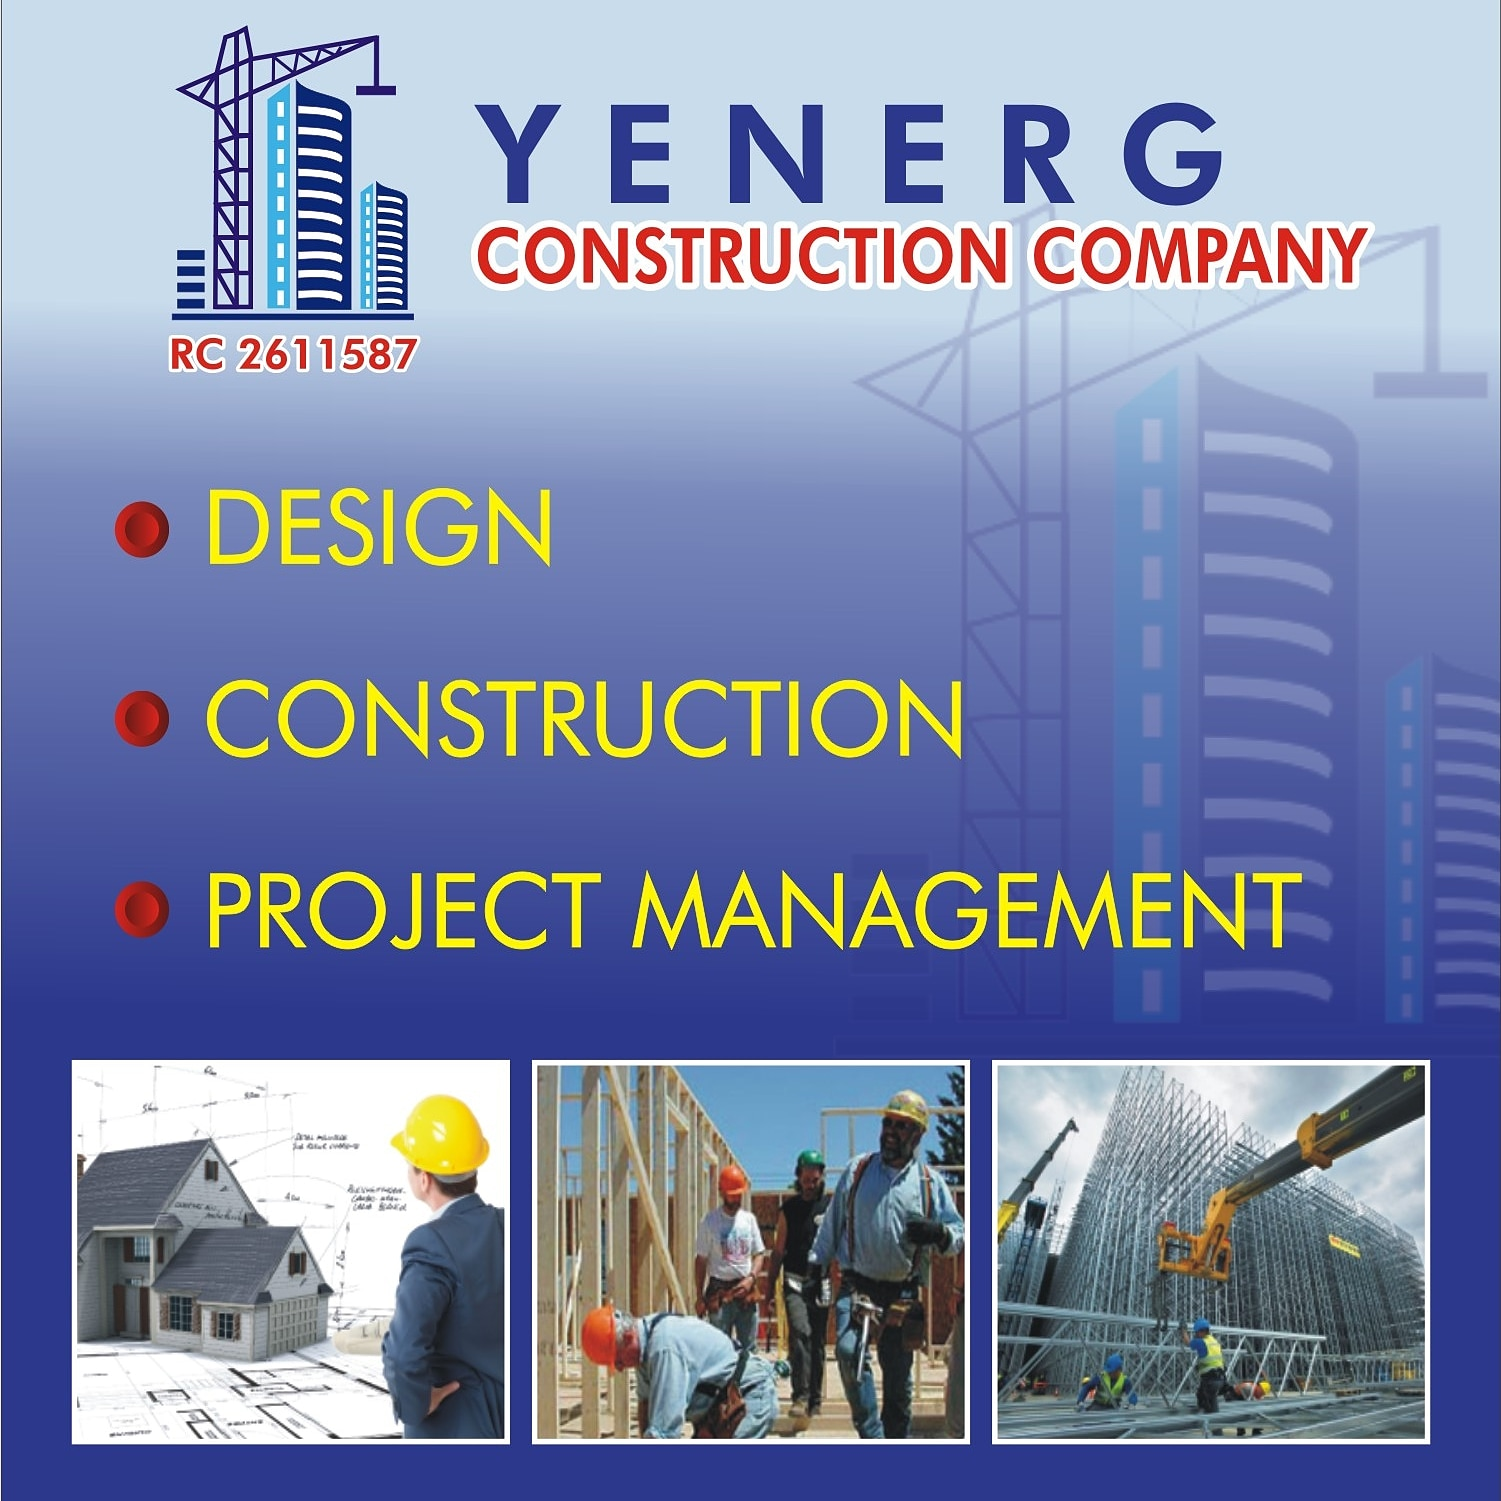 YENERG CONSTRUCTION COMPANY picture